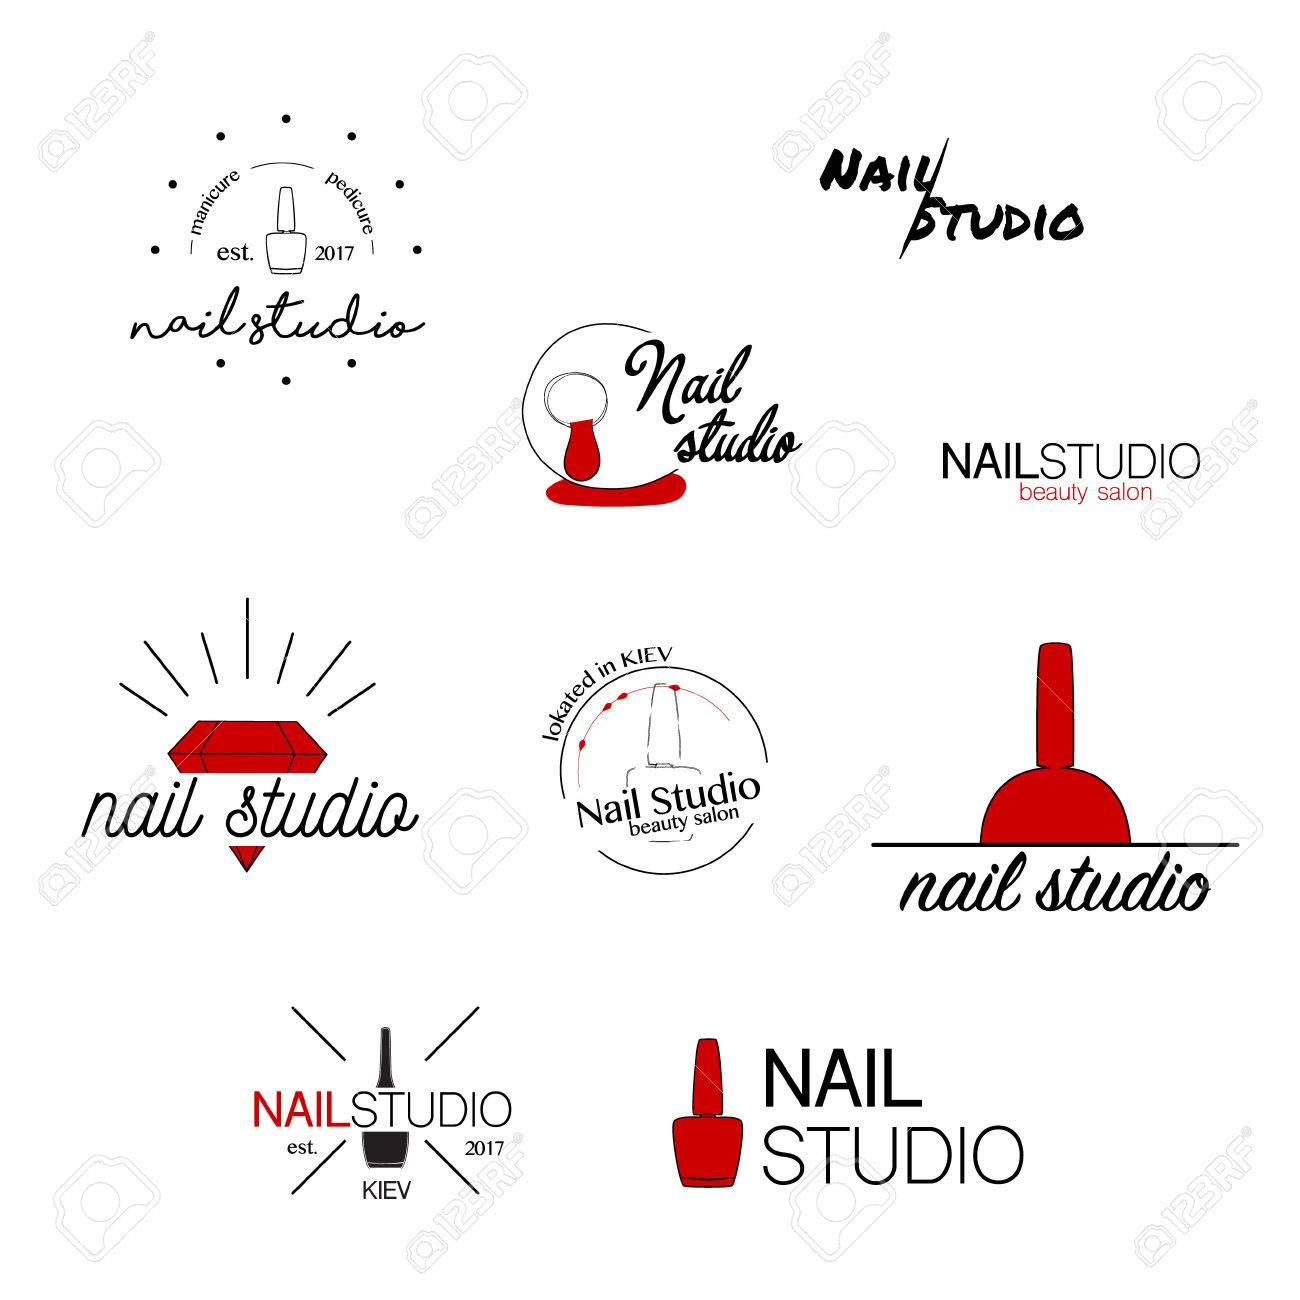 Nail studio vector icon beauty labels greeting cards nail studio vector icon beauty labels greeting cards illustration logo design ccuart Choice Image